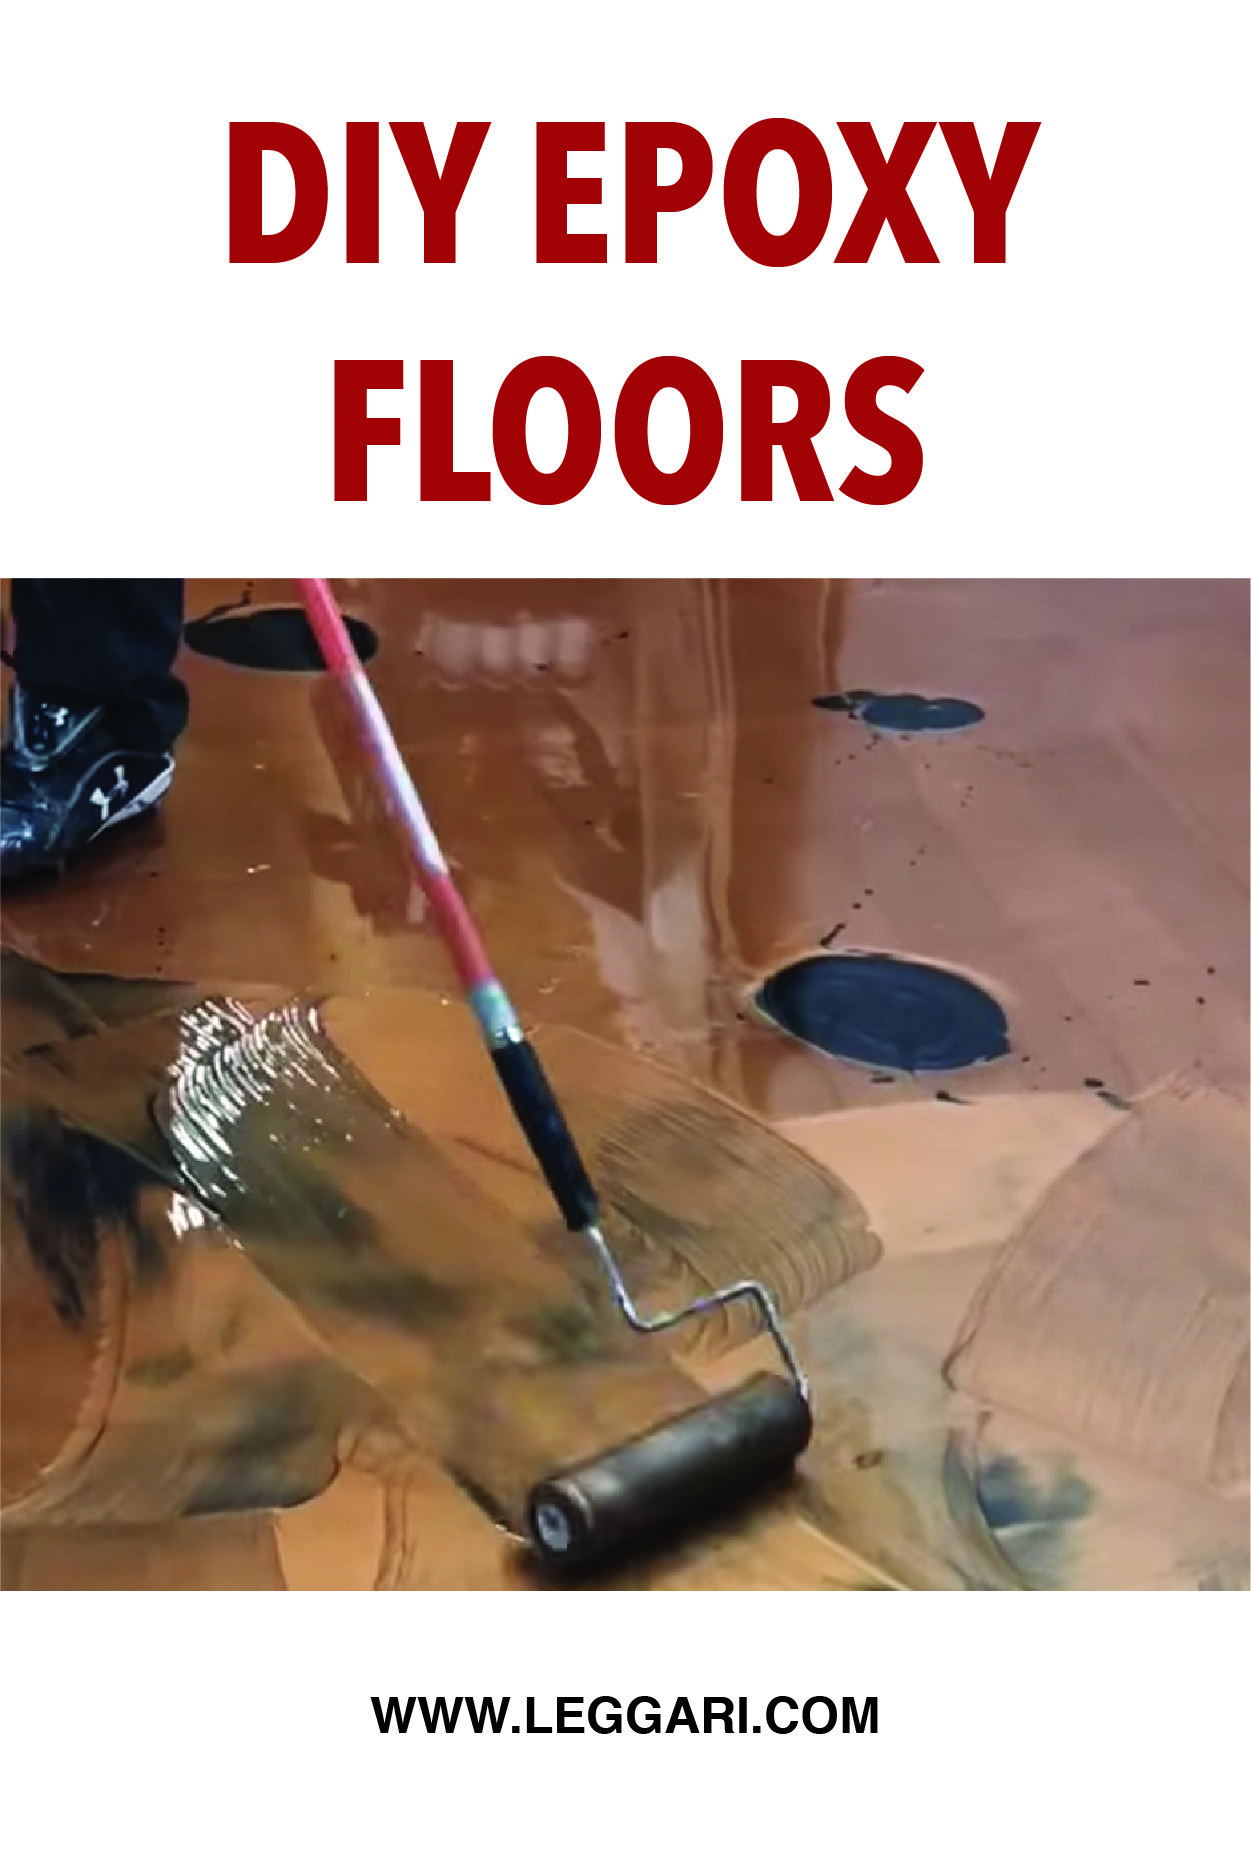 Customer install epoxy floors learn how to use out leggariproducts customer install epoxy floors learn how to use out leggariproducts kits to do this to solutioingenieria Choice Image